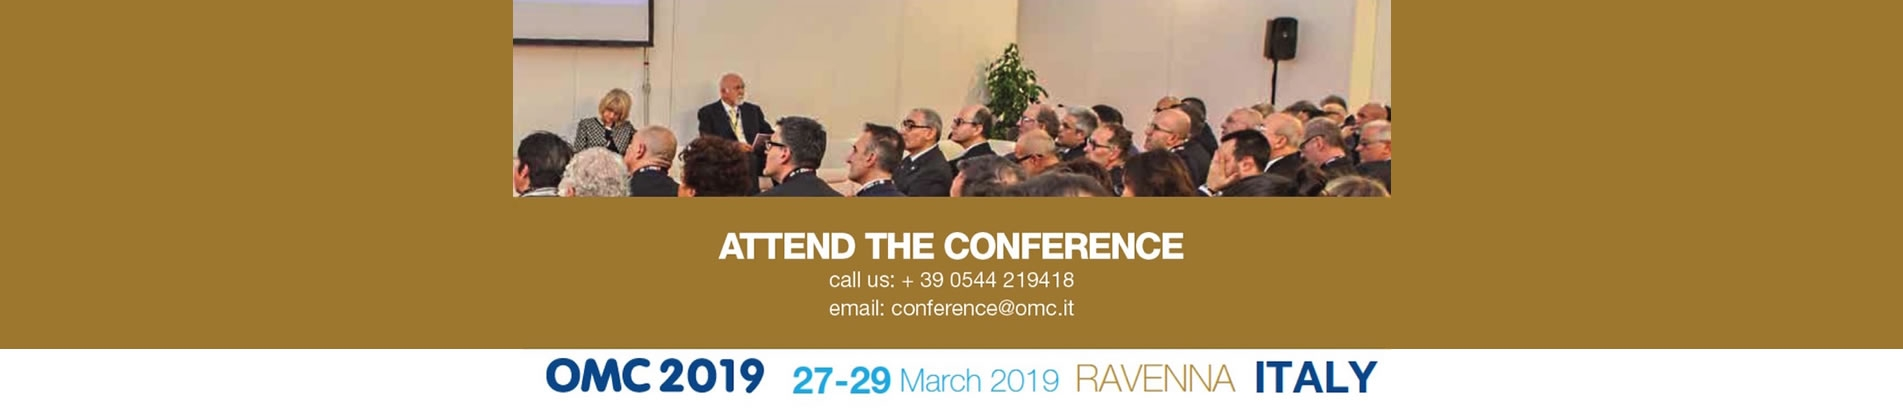 attendconference